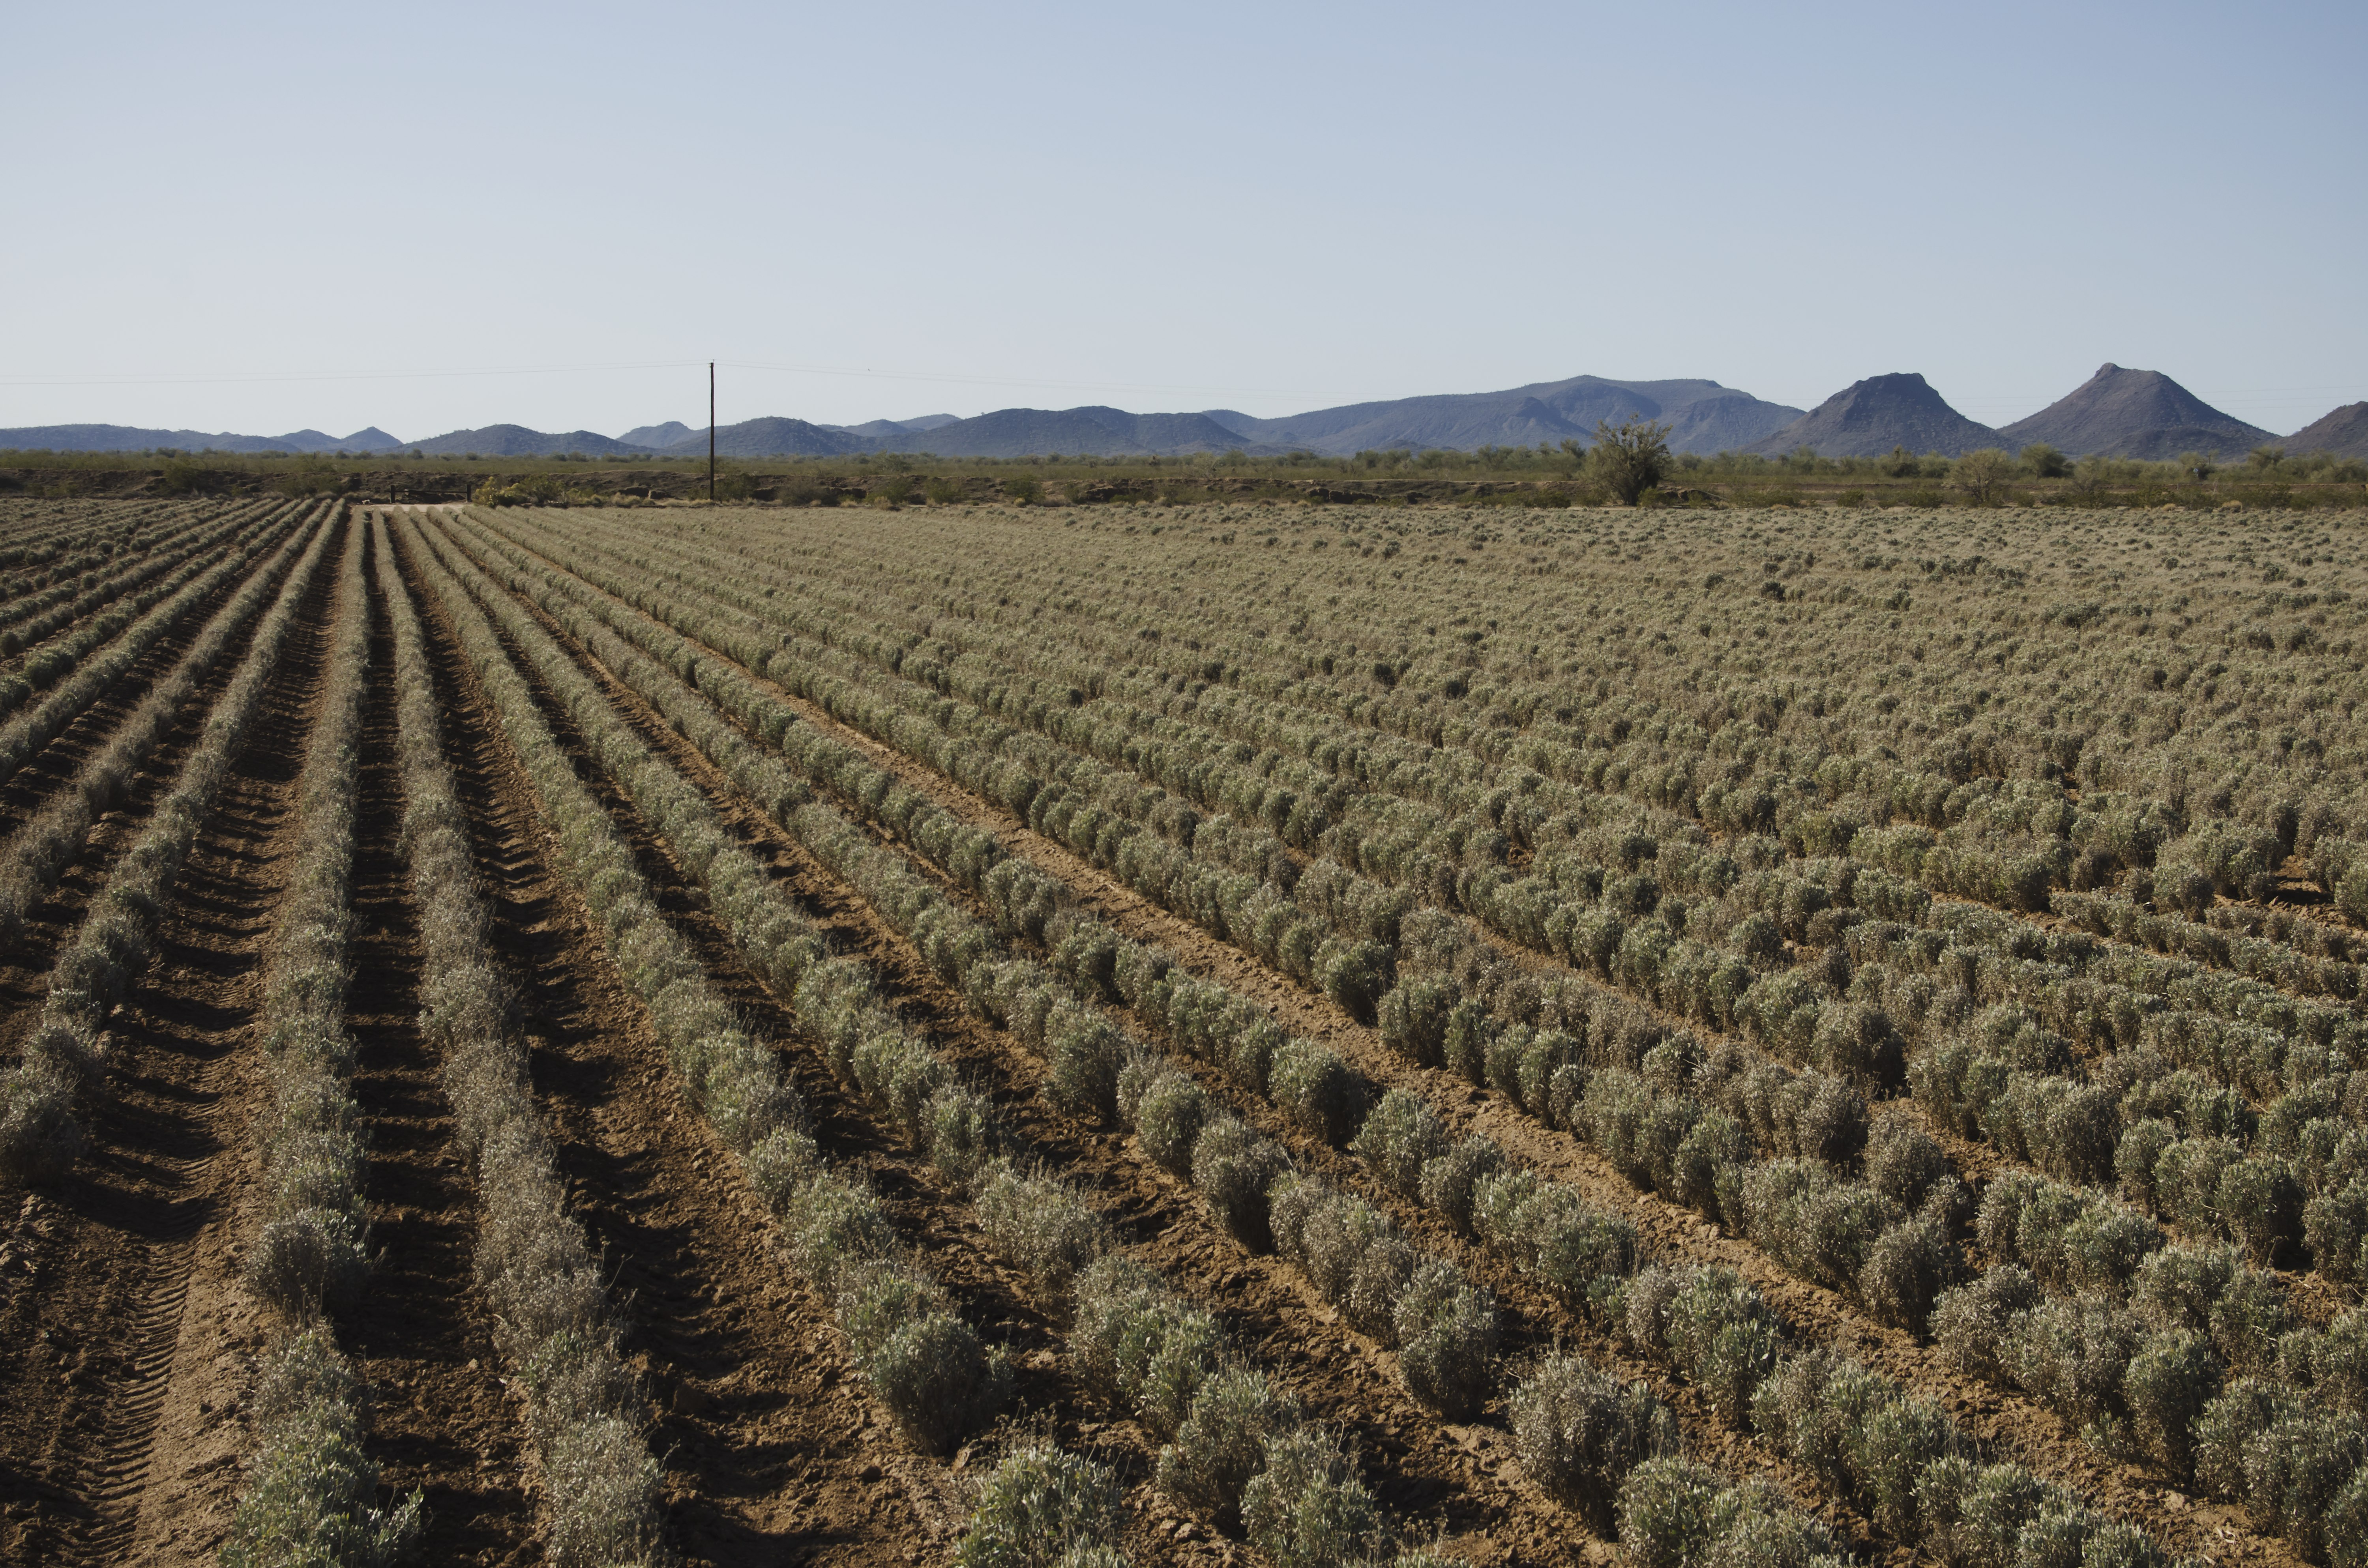 Cooper reports progress on guayule research